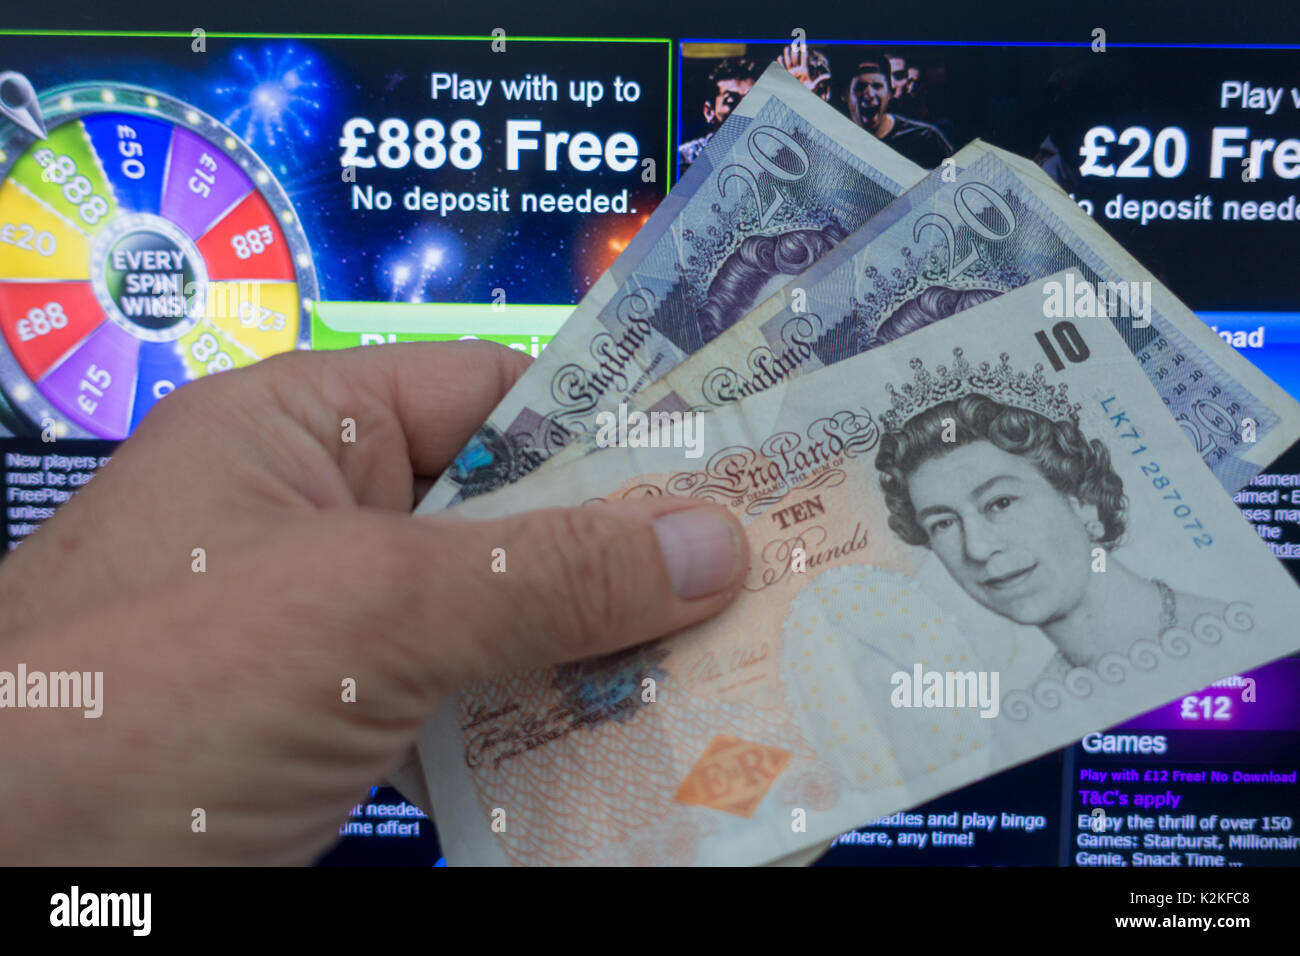 31st August 2017. Online bookmaker 888 has been fined a record £7.8 million following the discovery of 'significant flaws' in it's social responsibility processes, which aim to protect consumers from gambling-related harm. A Gambling Commission probe found that, due to a technical failure, over 7,000 people who had chosen to self-exclude were still able to access their accounts and deposit a total of £3.5 million. Credit: Mick Flynn/Alamy Live News - Stock Image